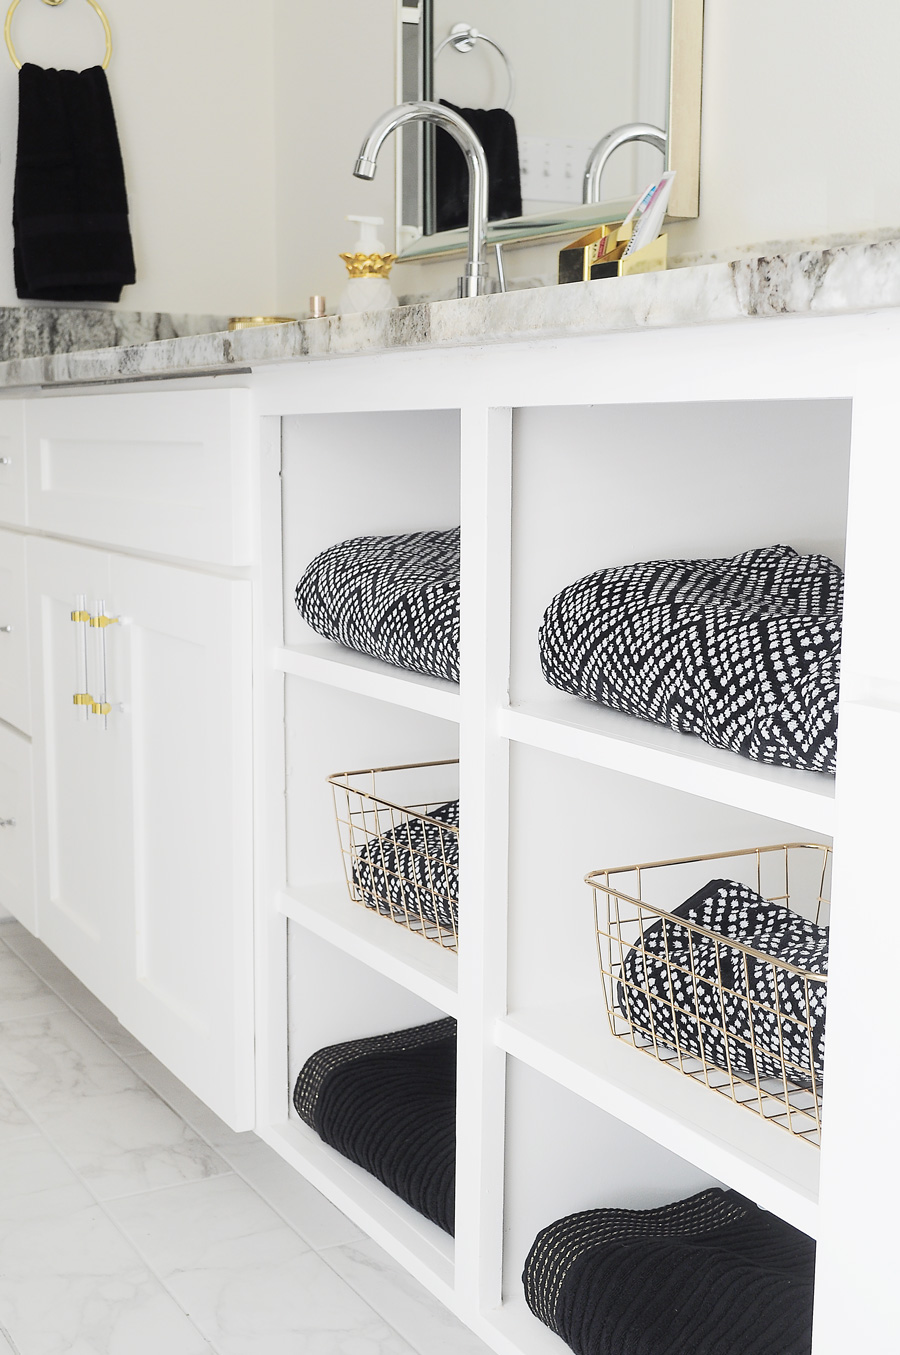 Black and white bath towels in open bathroom shelving.